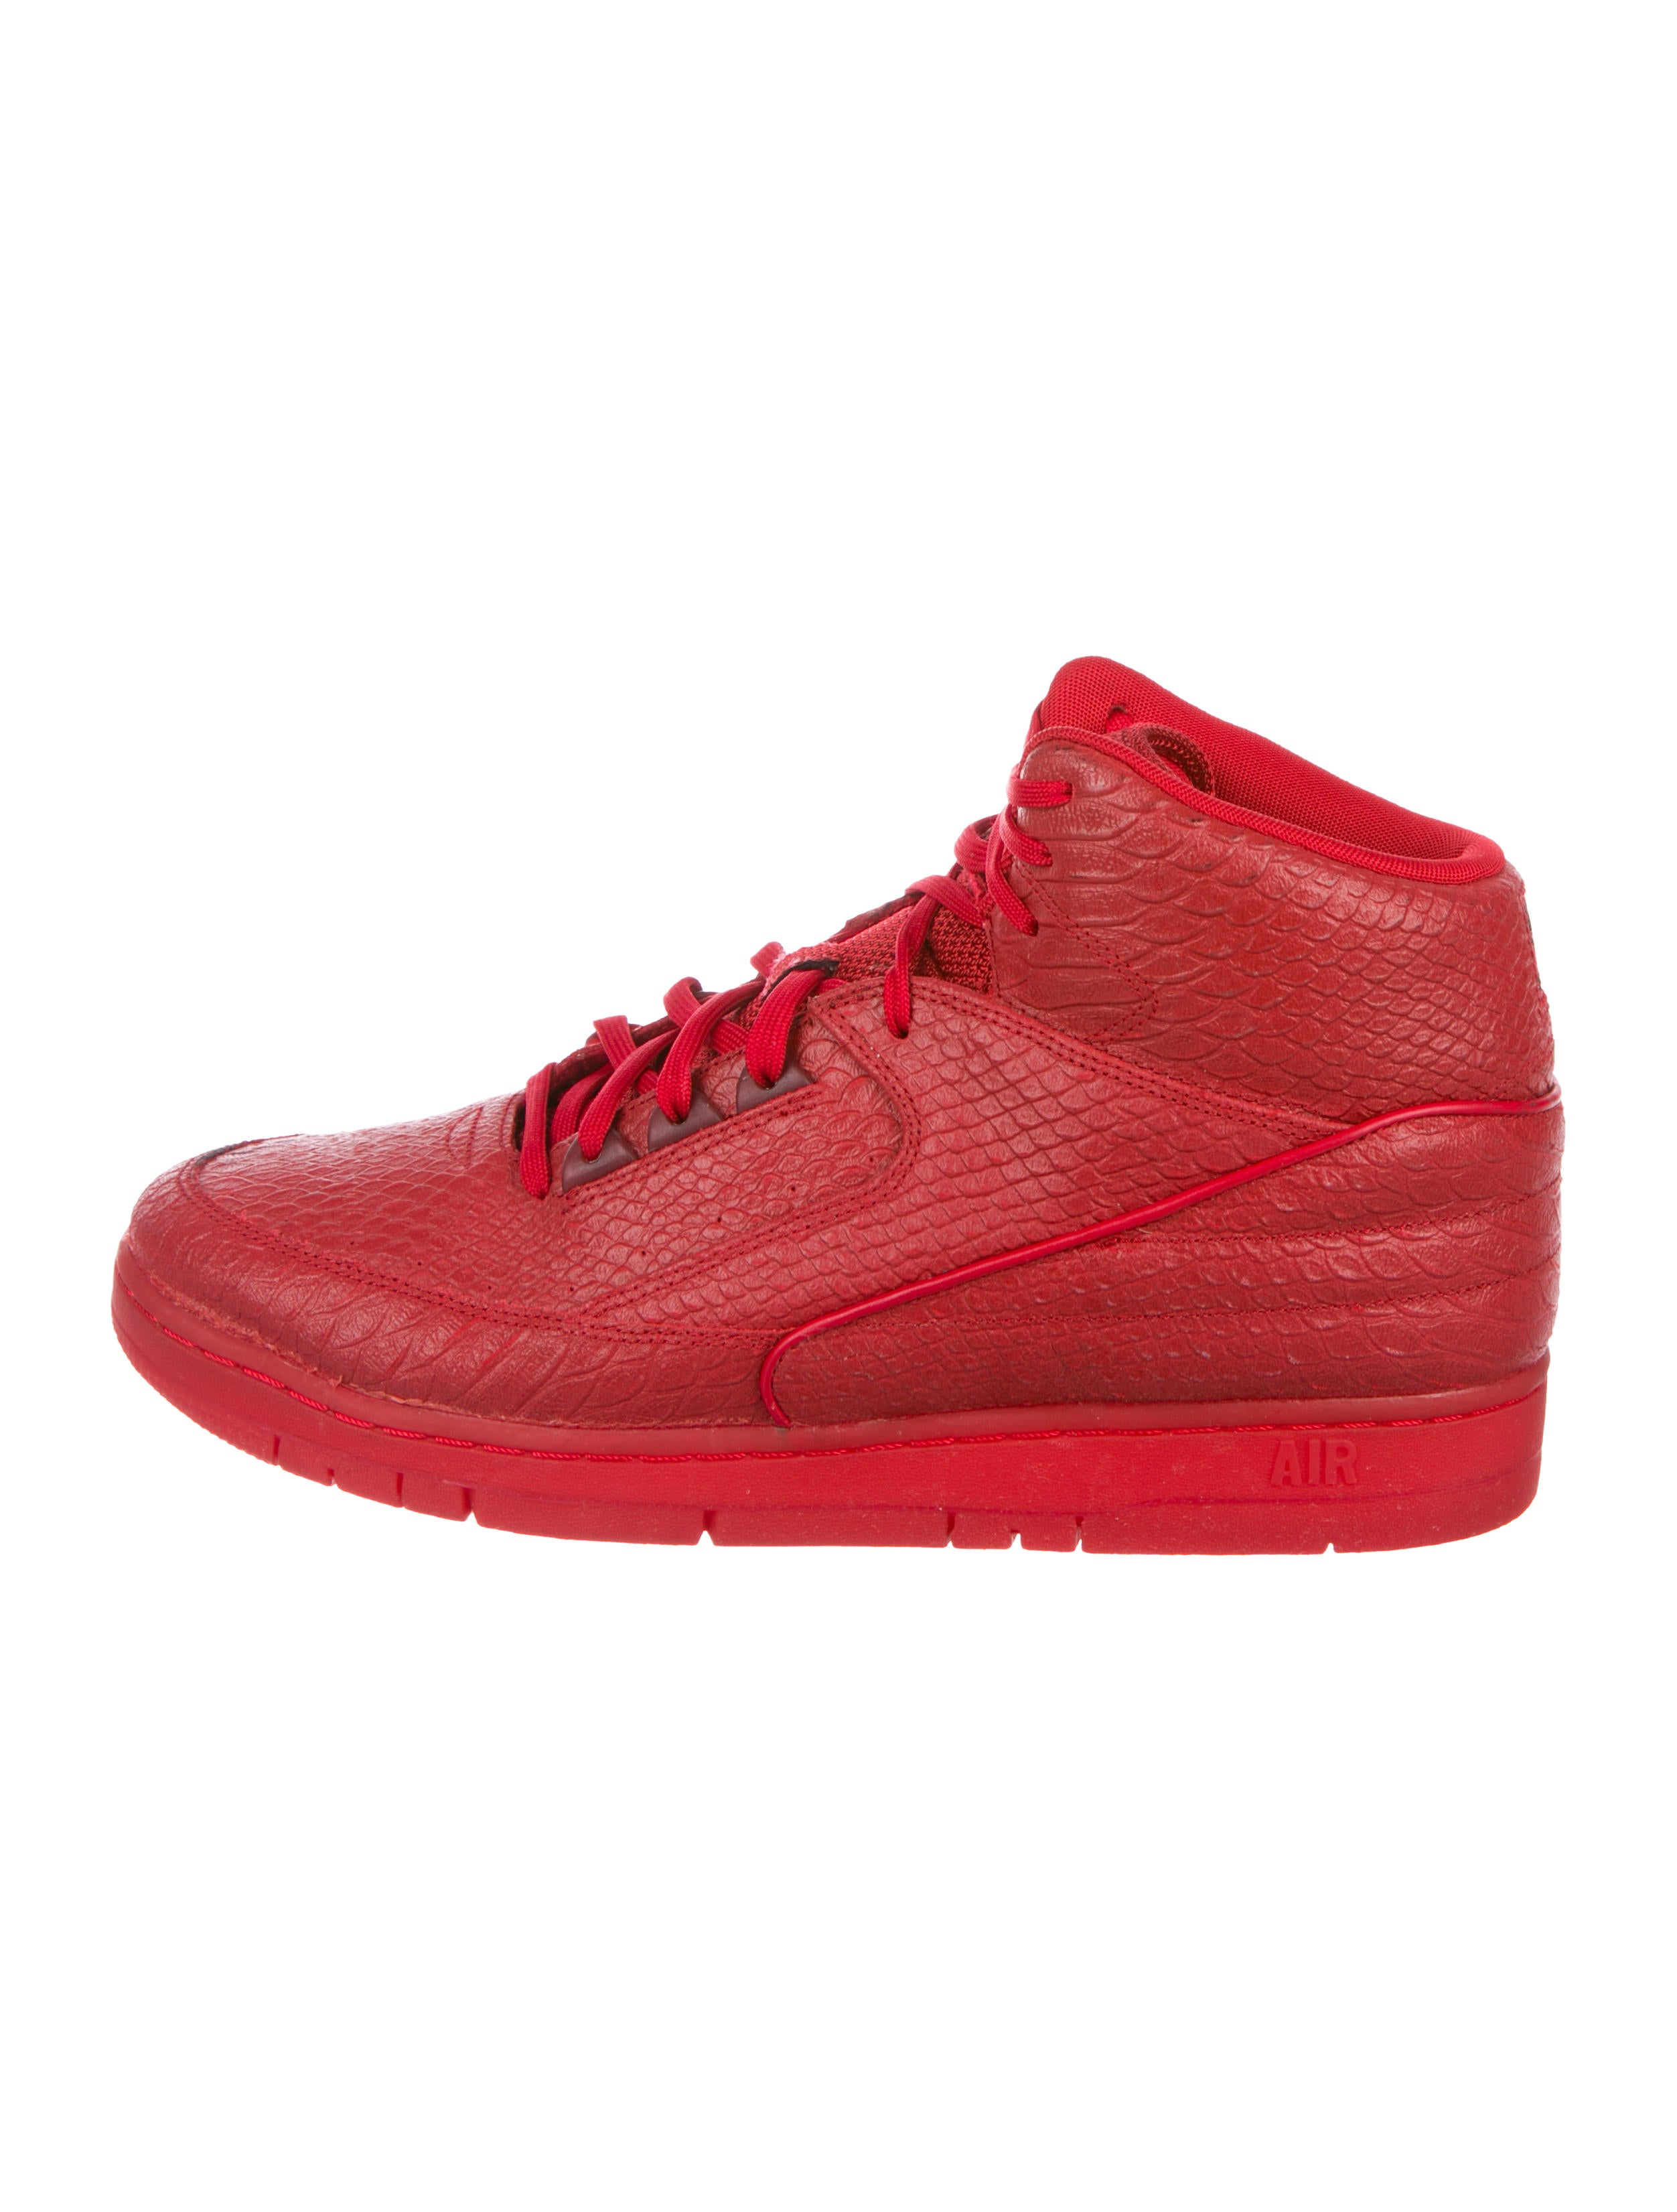 the latest 11b7f 297e8 Nike Air Python PRM Red October Sneakers - Shoes - WU225567   The ...